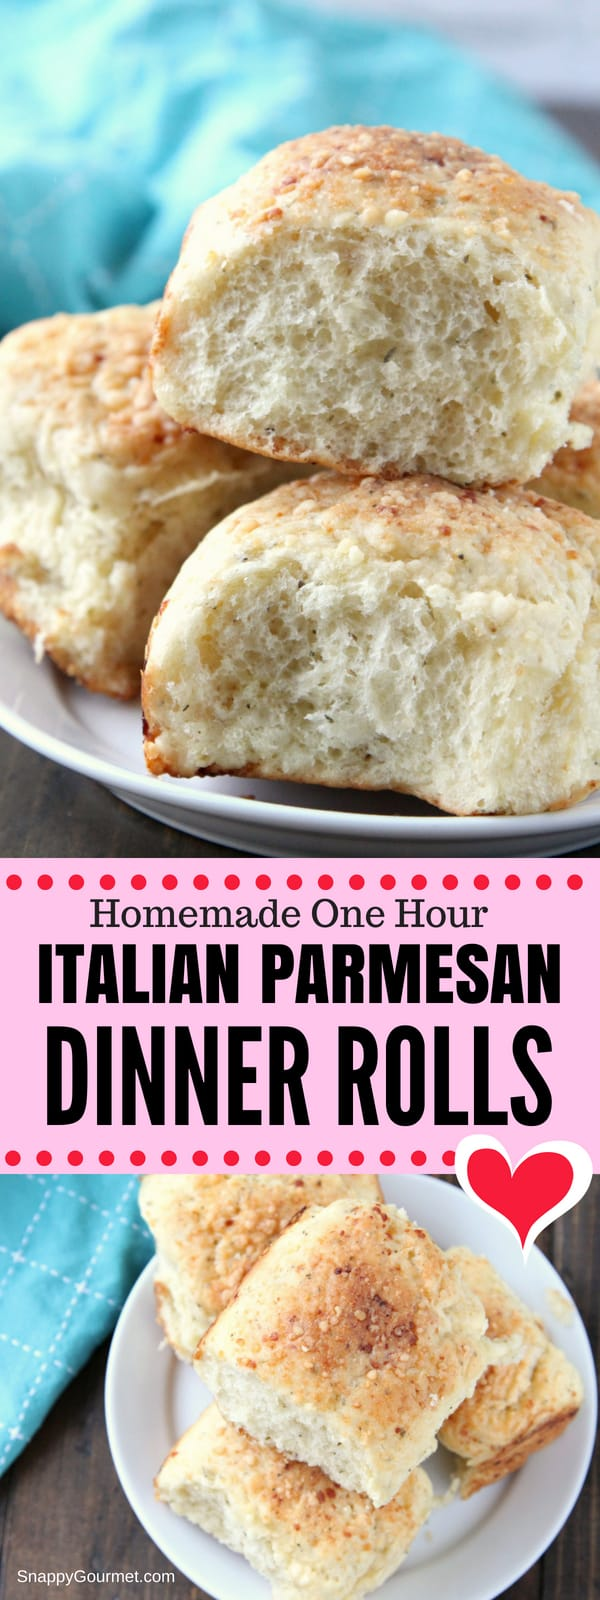 Homemade Dinner Rolls - quick and easy Italian Parmesan dinner rolls from scratch ready in one hour